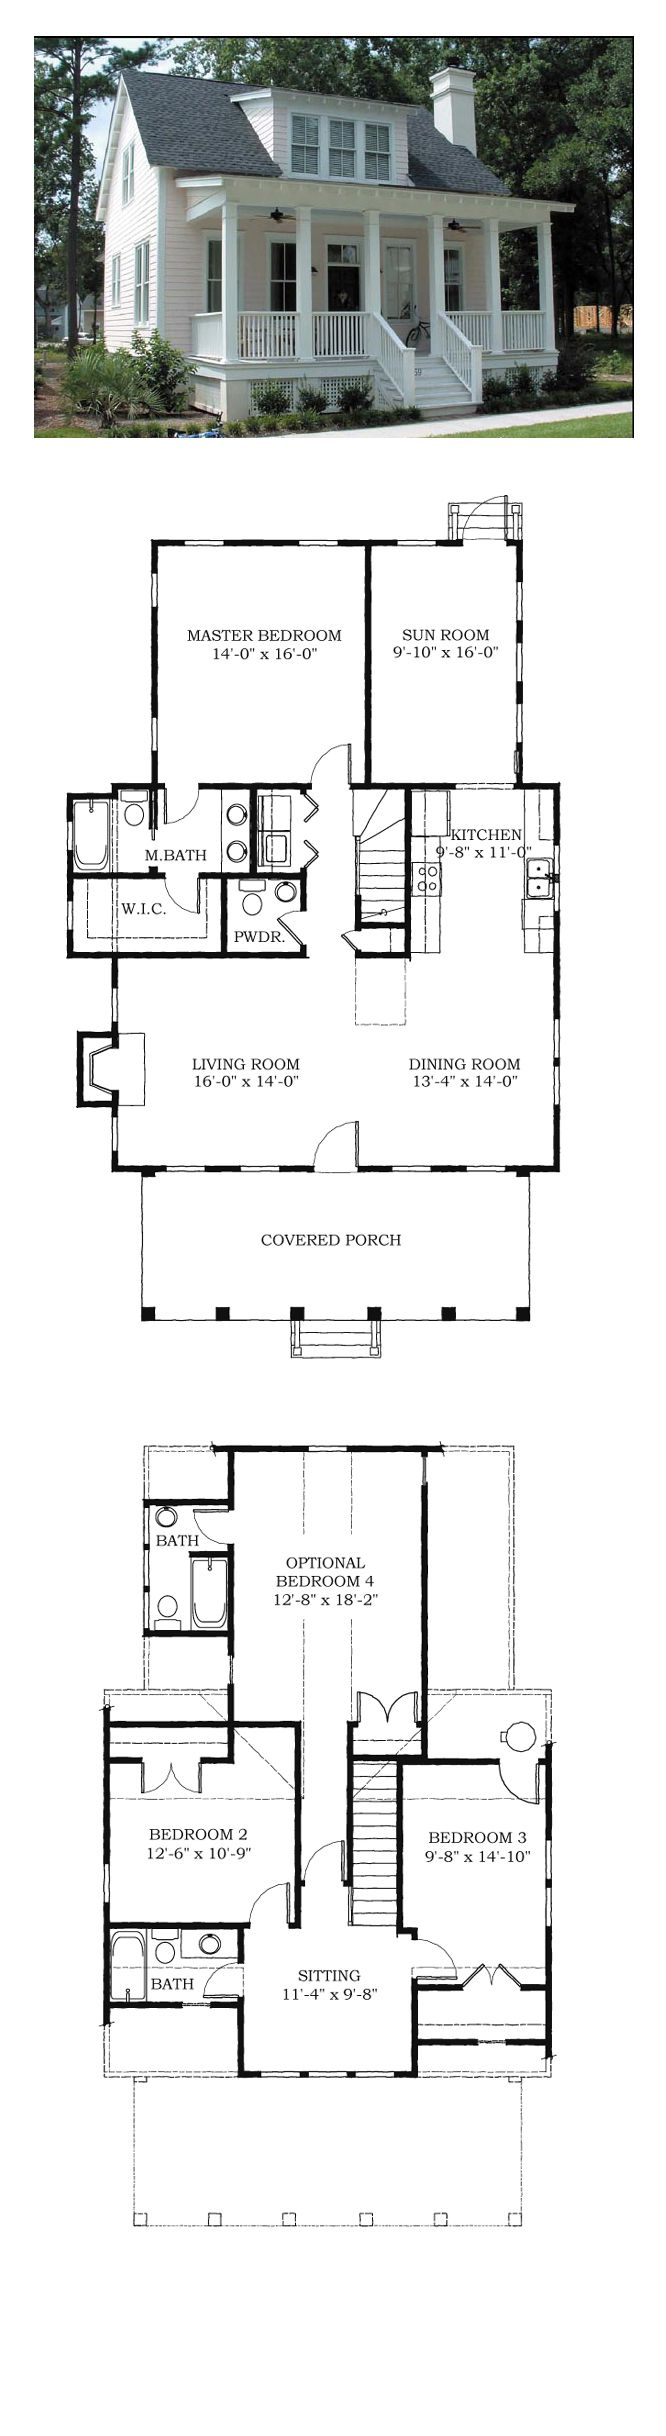 cool house plan id chp 38703 total living area 1783 sq - Small Cottage Plans